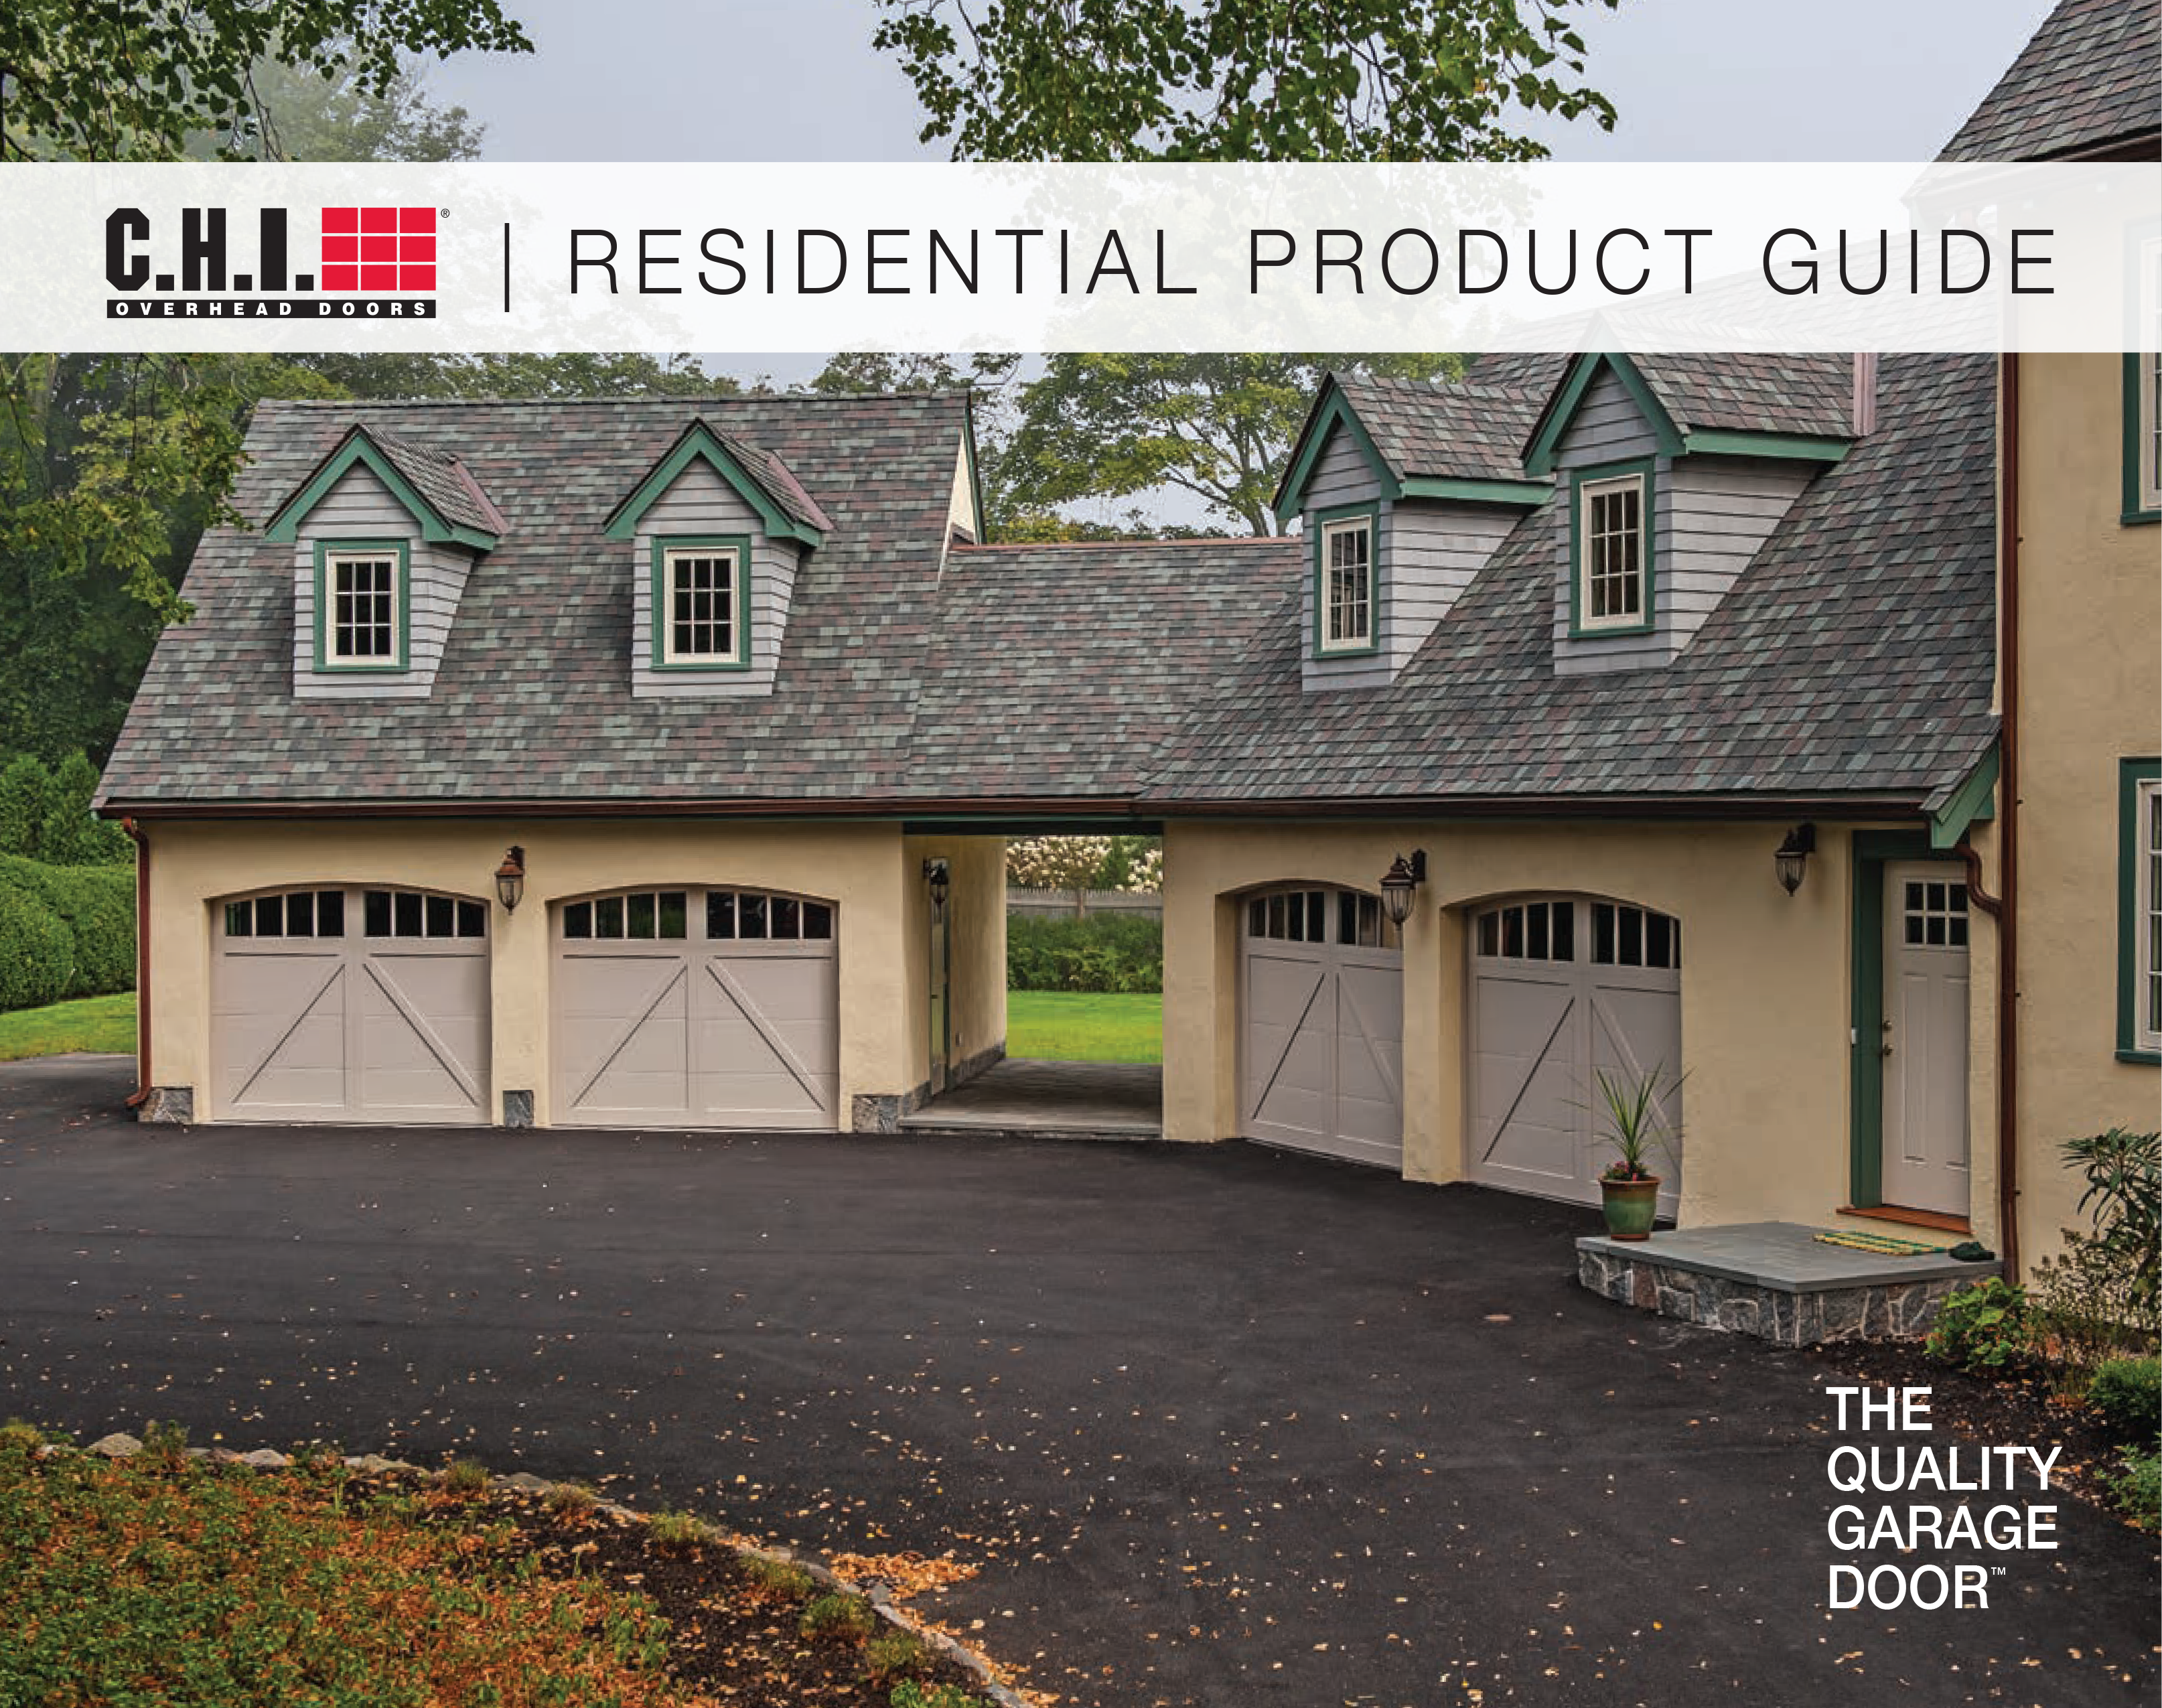 CHI Overhead Doors Residential Product Guide